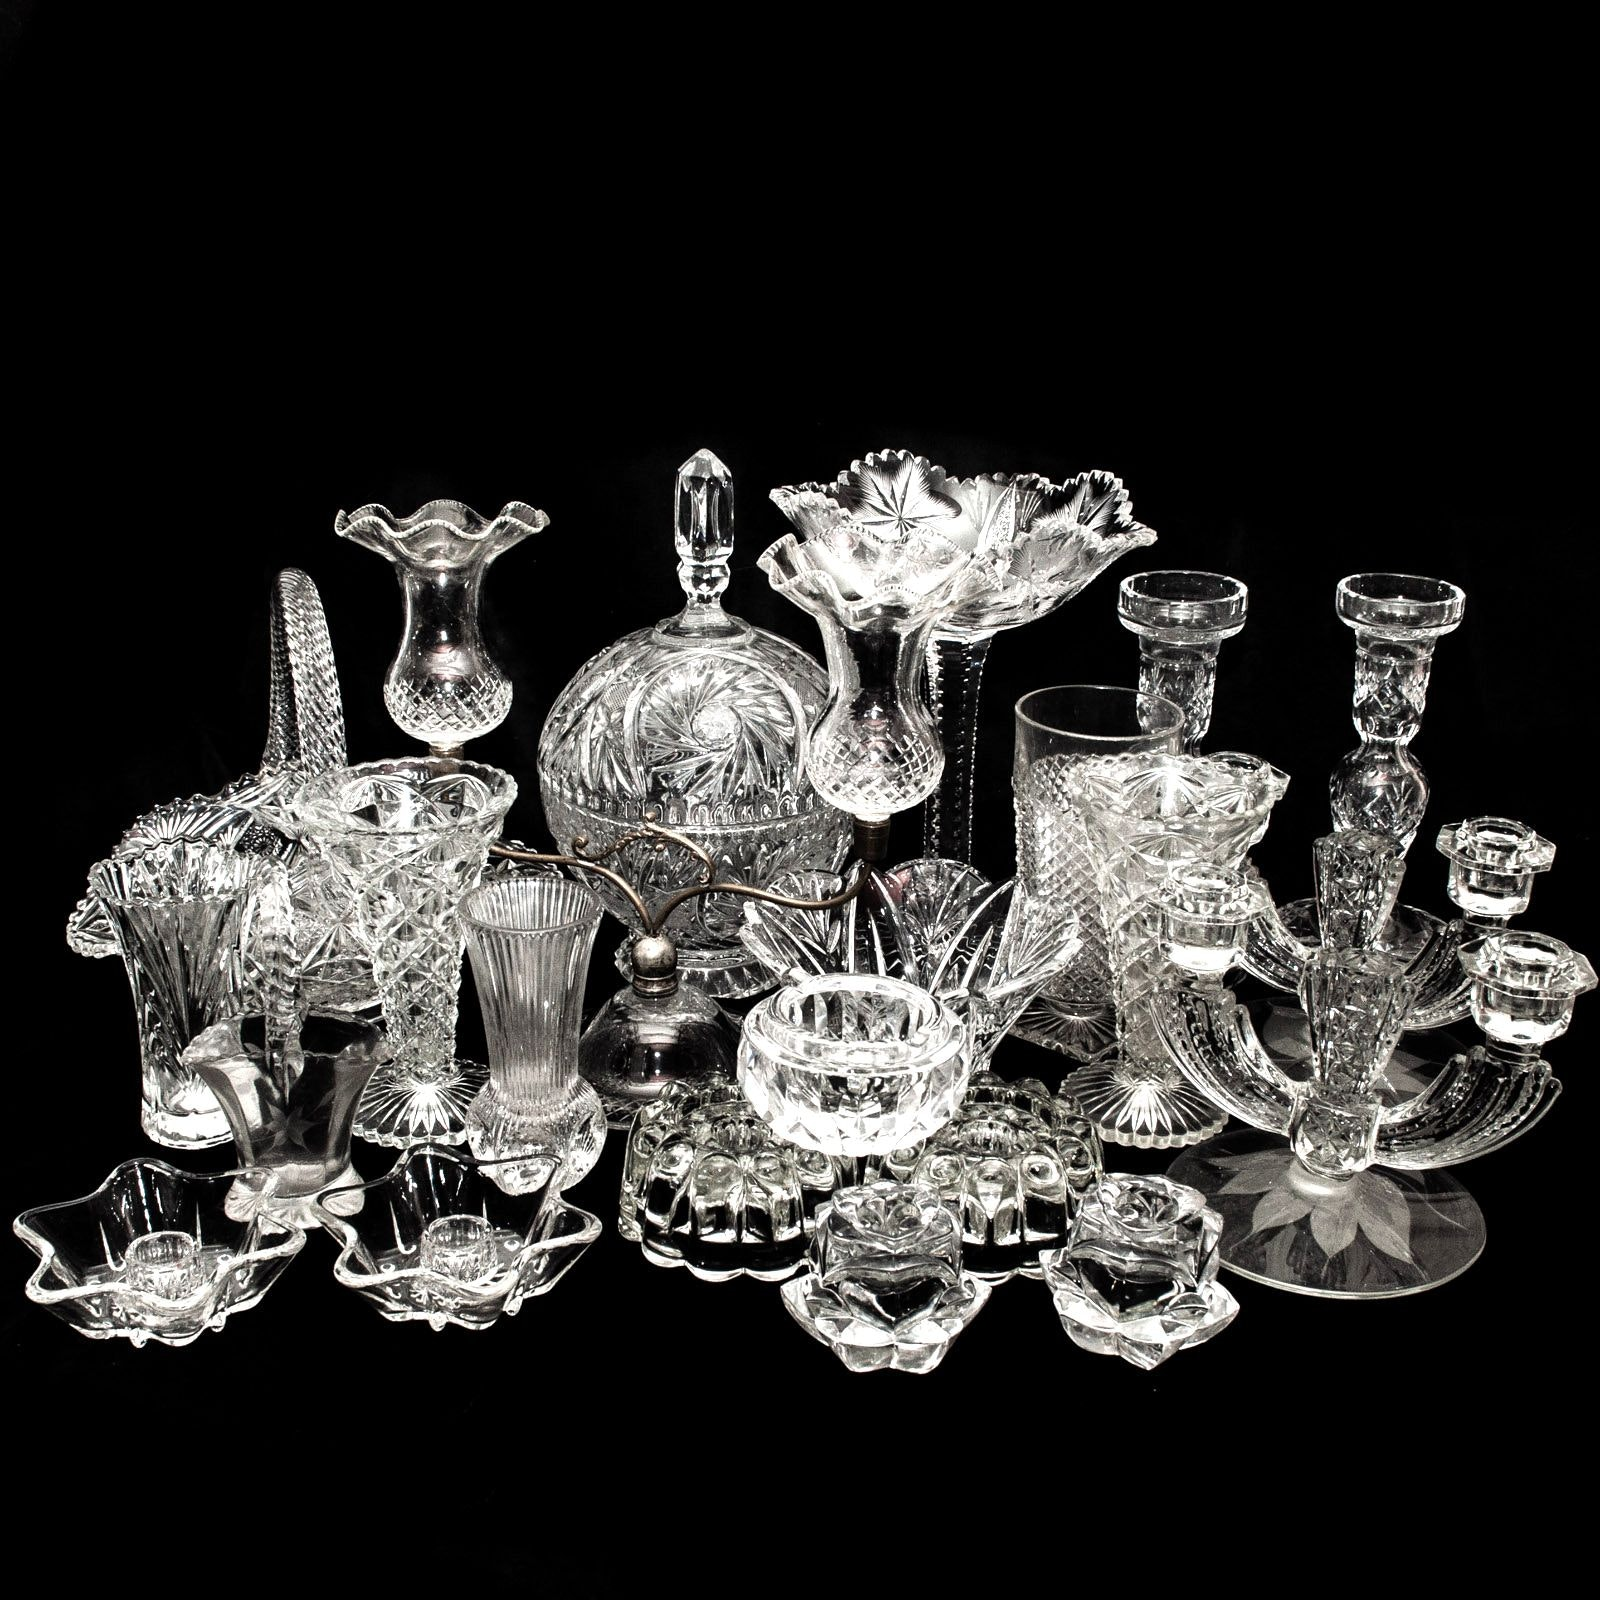 Crystal and Glass Vases, Candleholders, and Bowls Featuring Mikasa